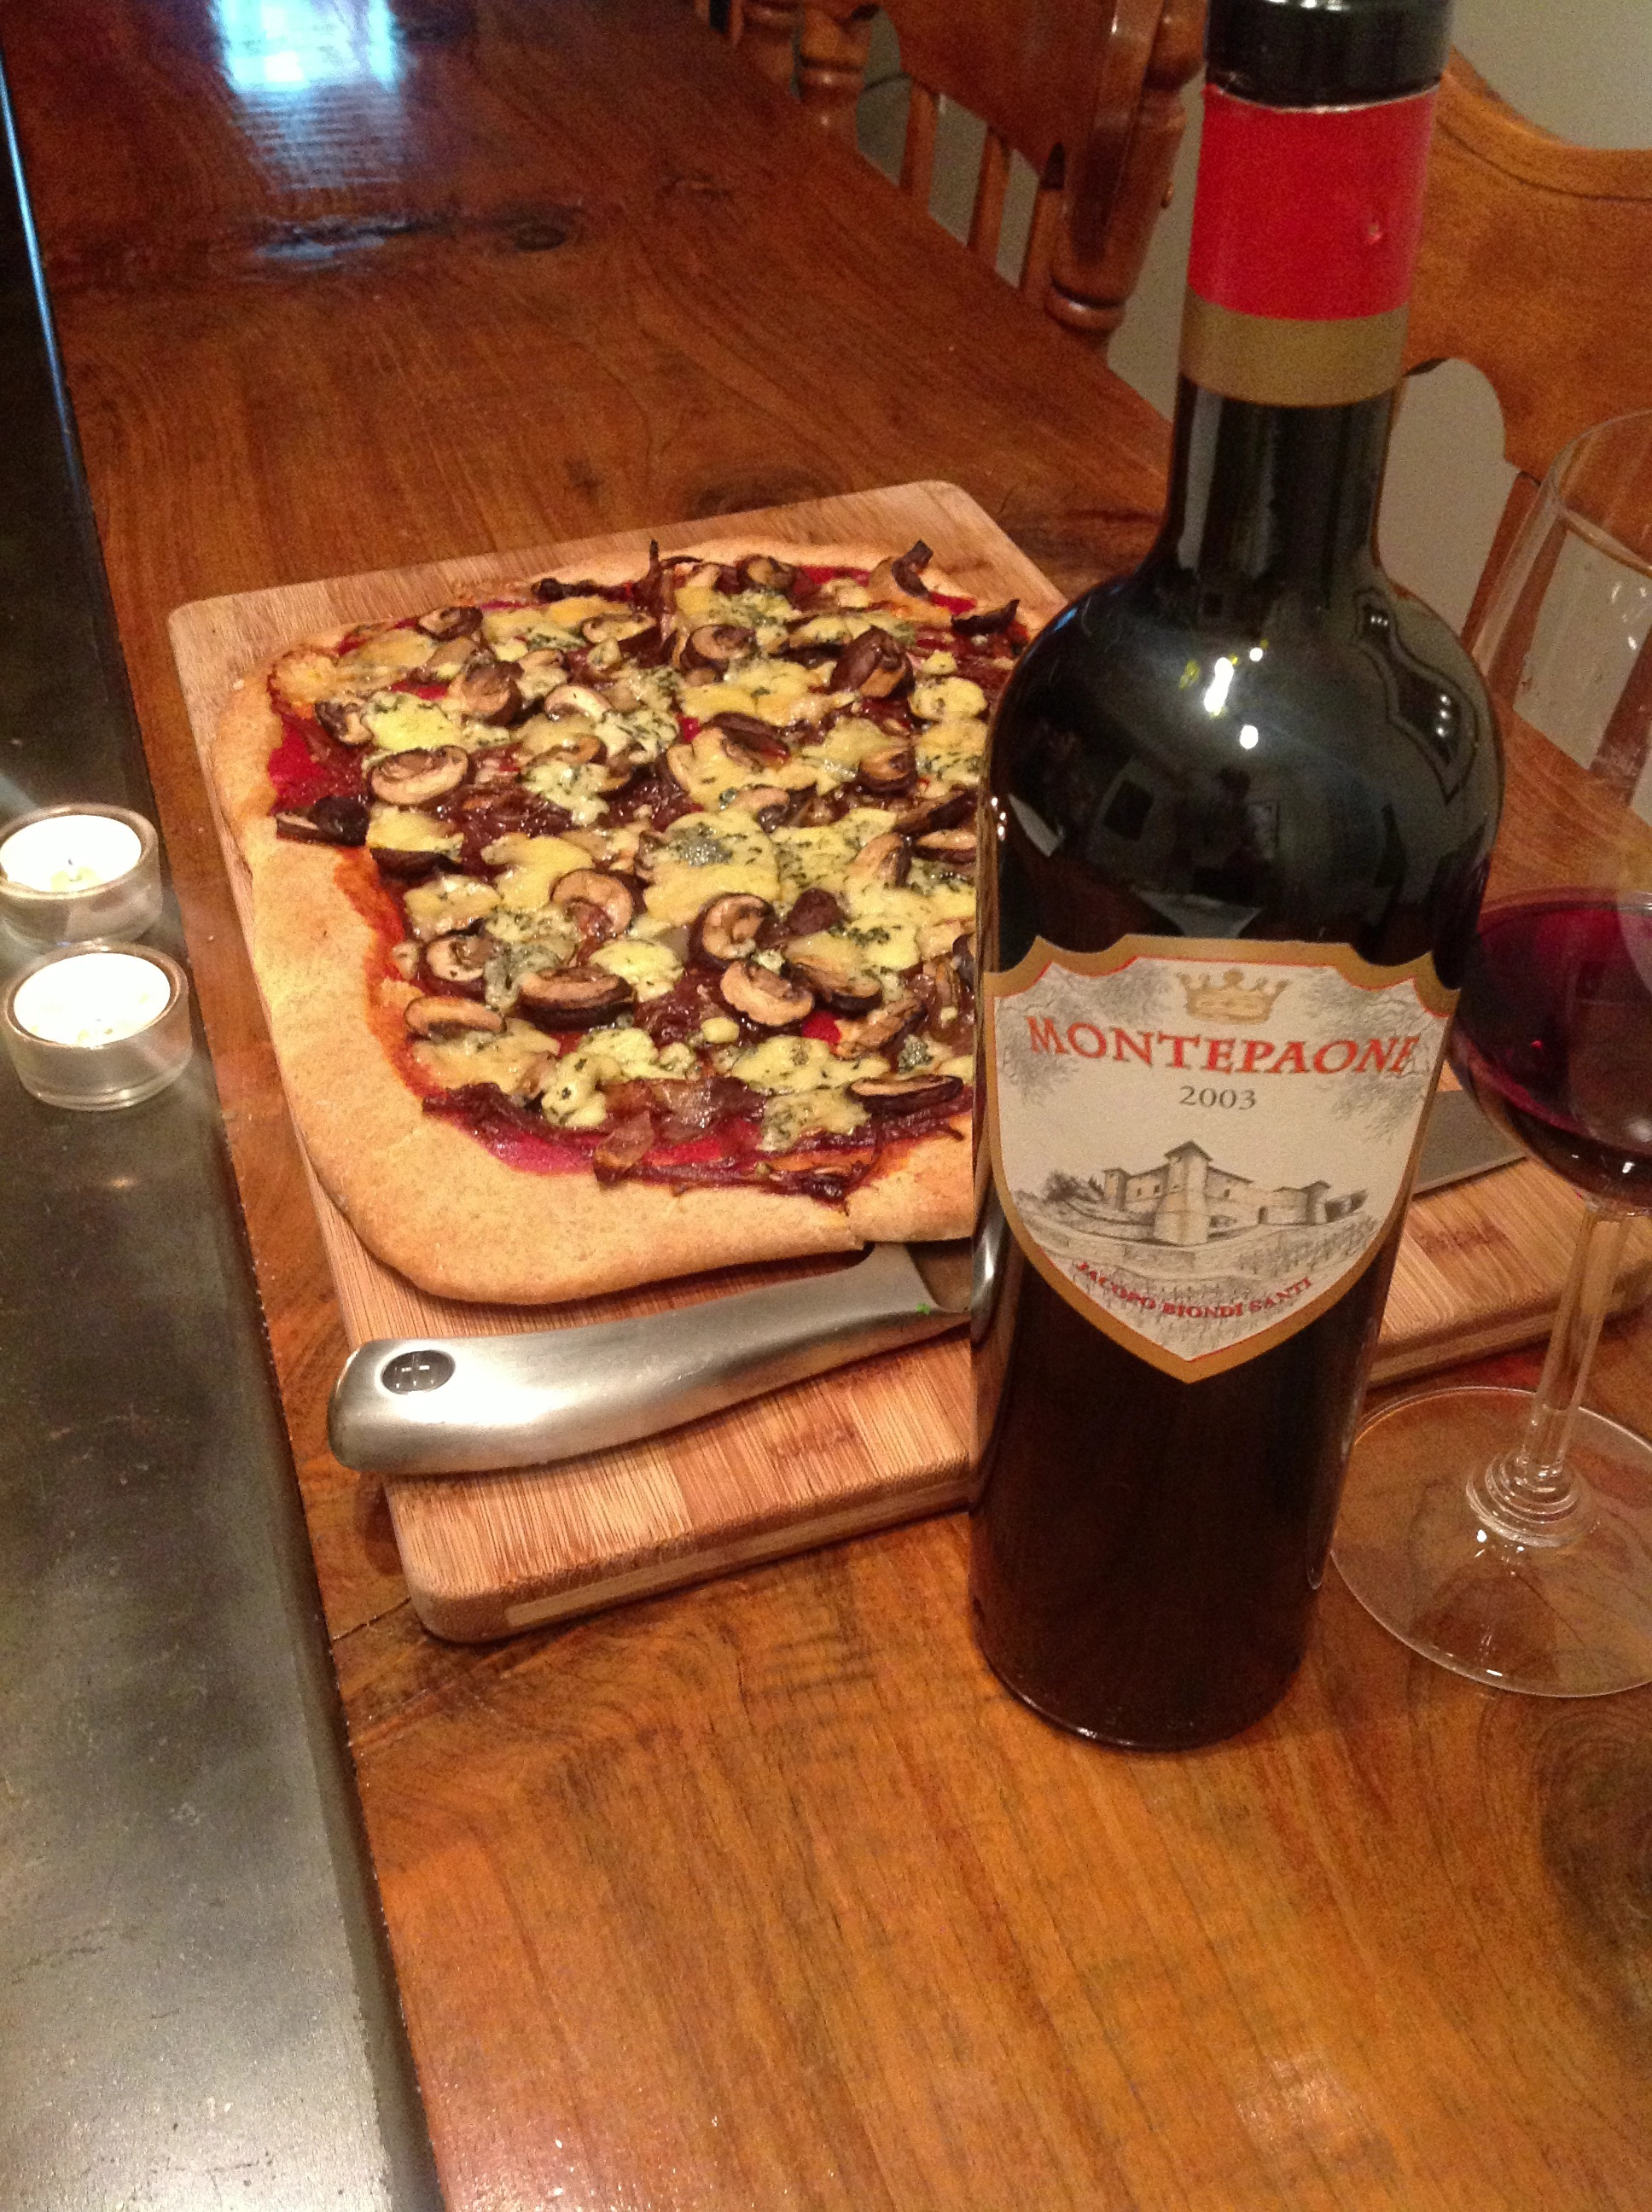 NYE dinner: Mushroom and Gorgonzola spelt pizza with 2003 Montepaone.